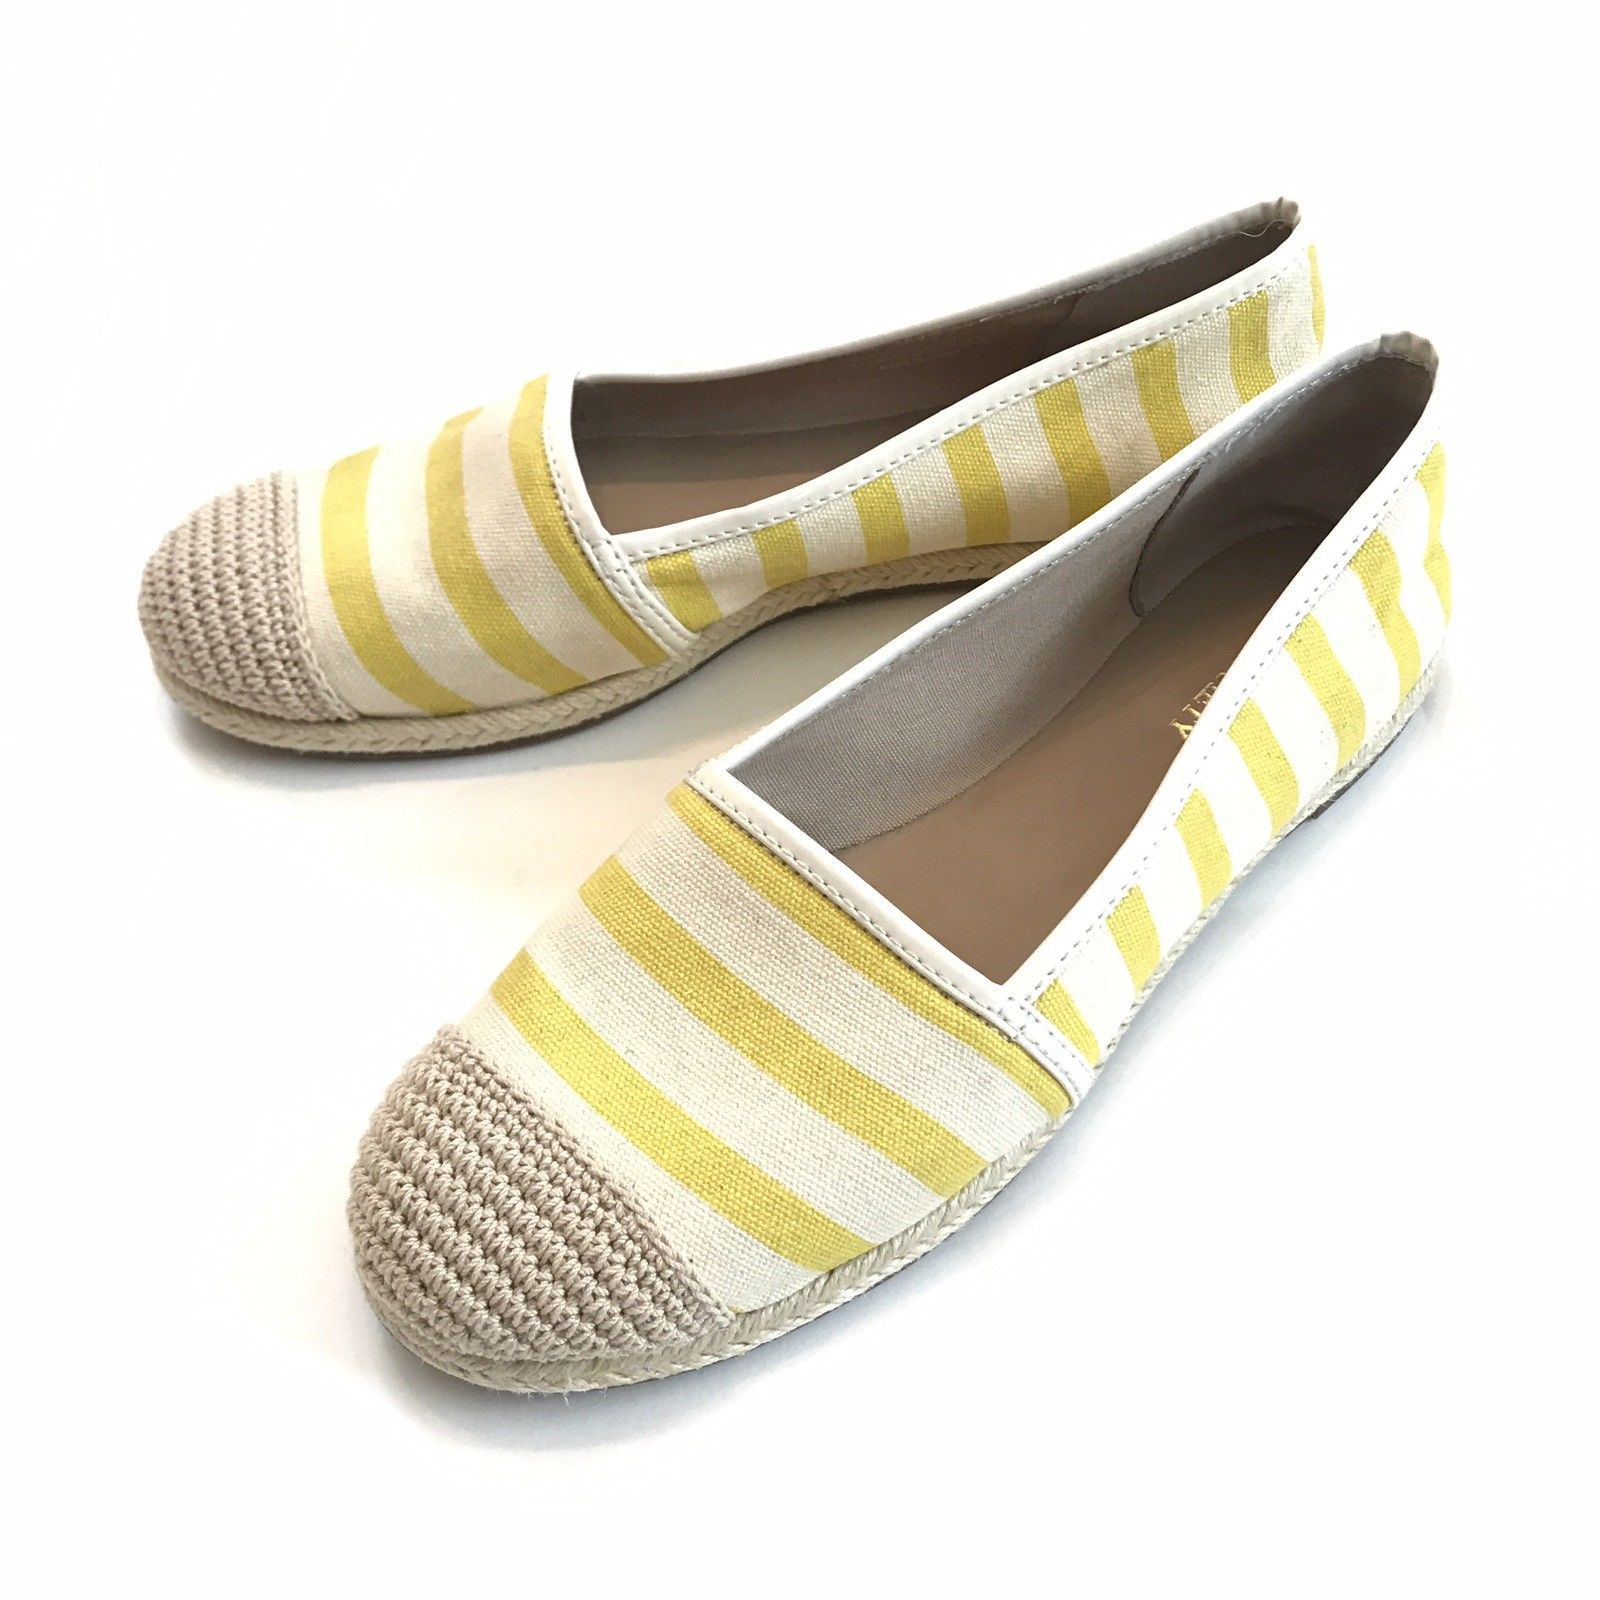 Sole Society Landon Espadrille Flats Women 9 Yellow Shoes Anthropologie Striped